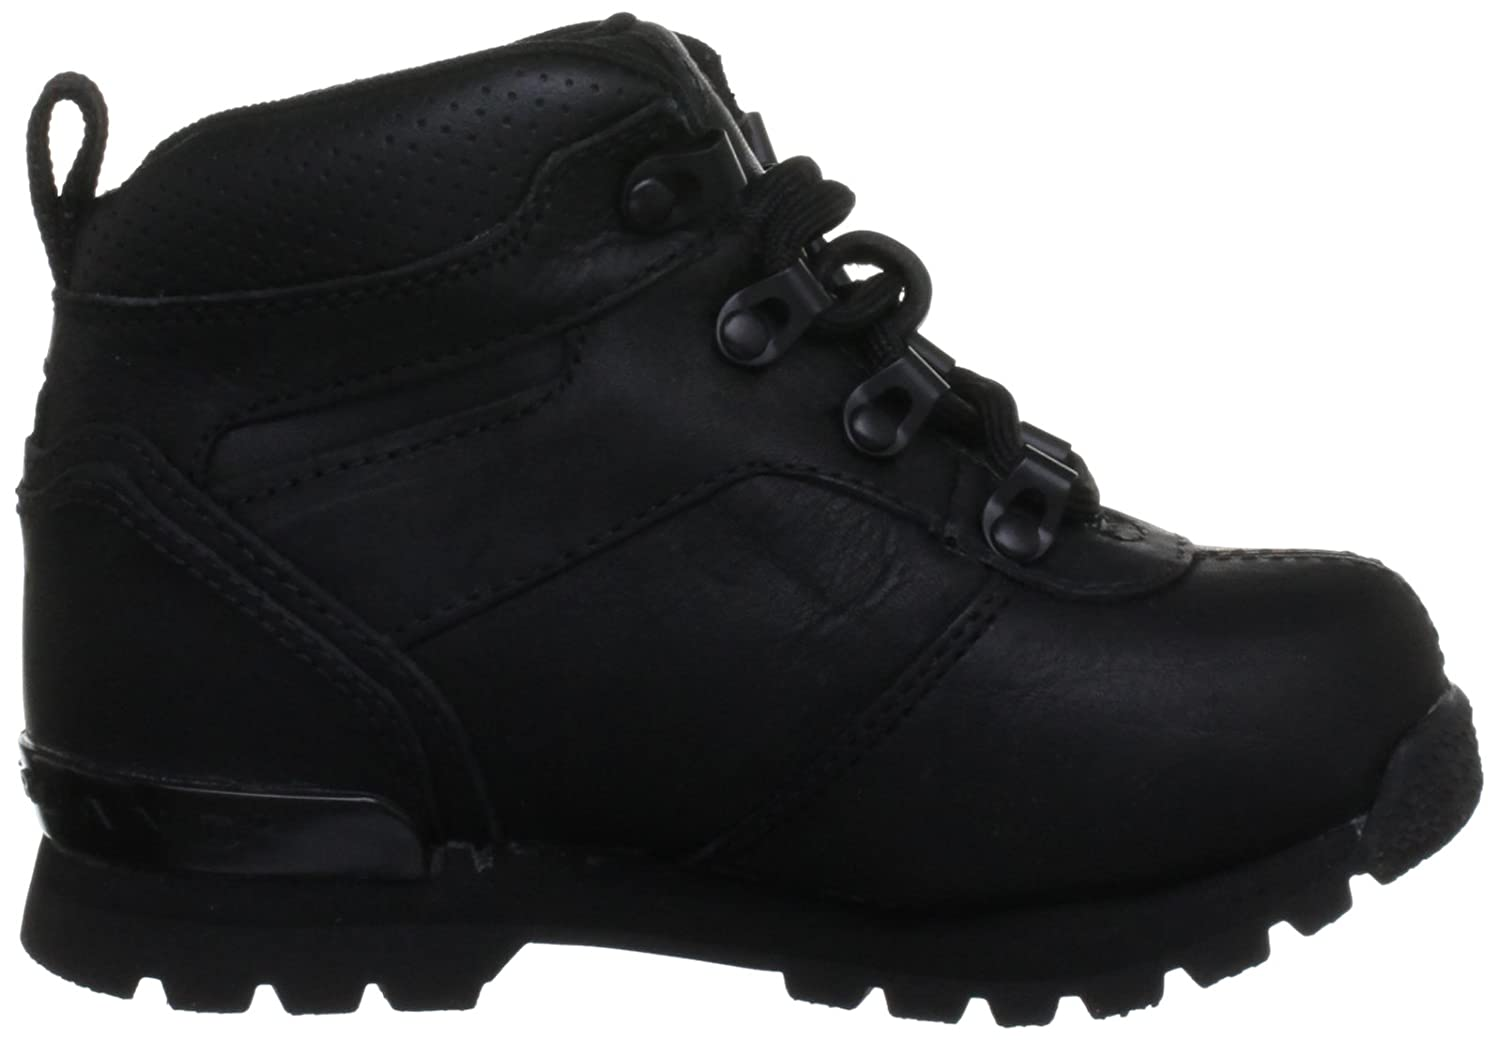 861fd9e5ff1a Timberland Euro Hiker, Unisex-Child Boots  Amazon.co.uk  Shoes   Bags